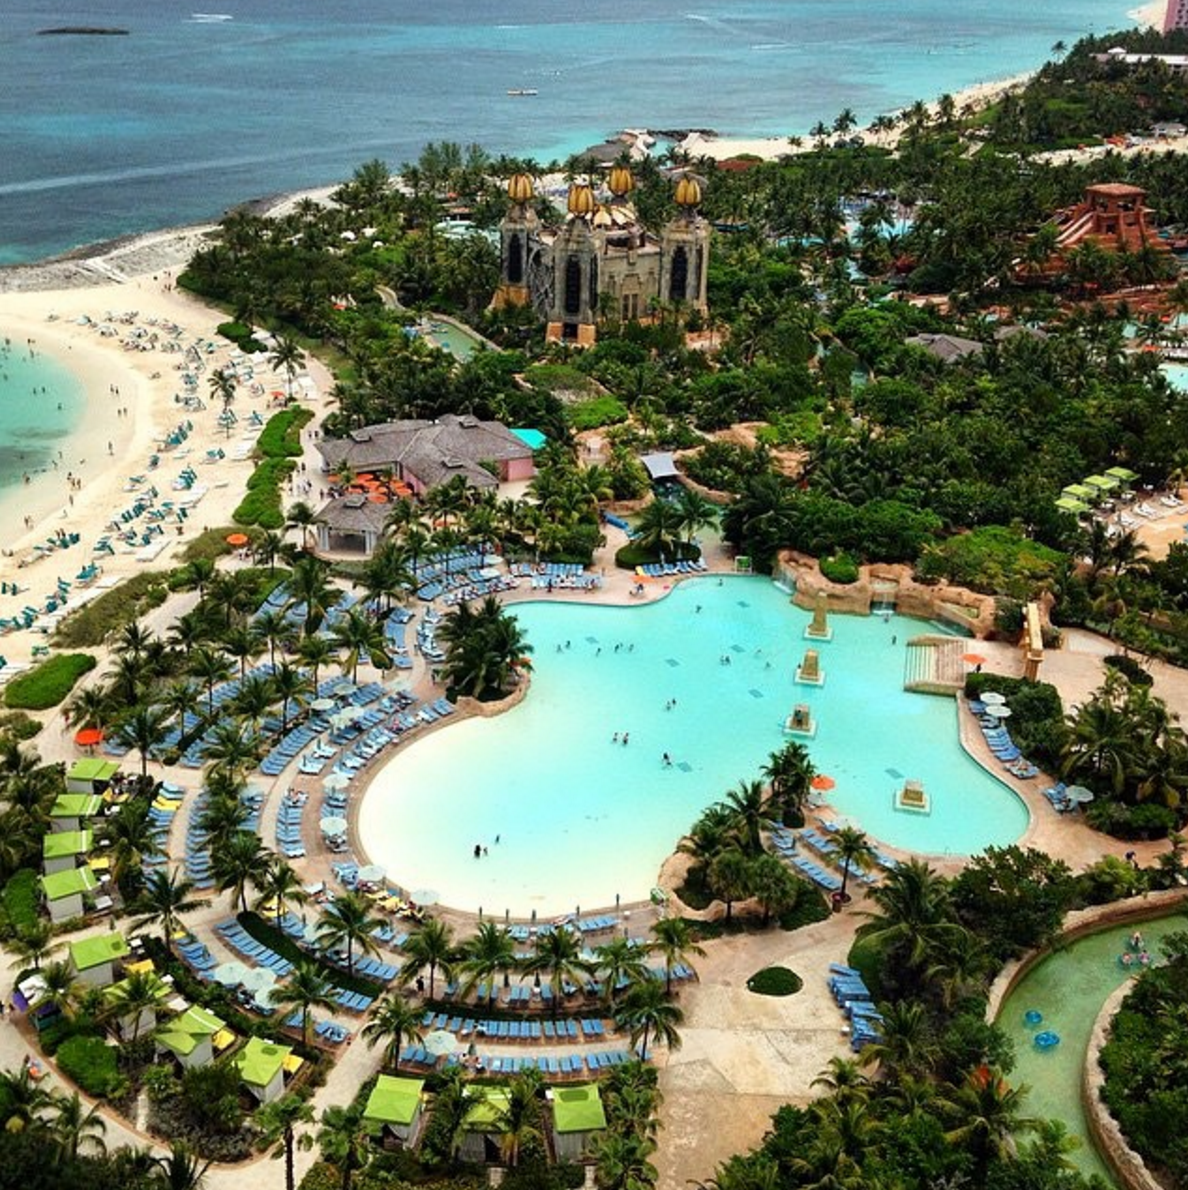 Pool Or Beach... You Decide! #AtlantisResort Photo By